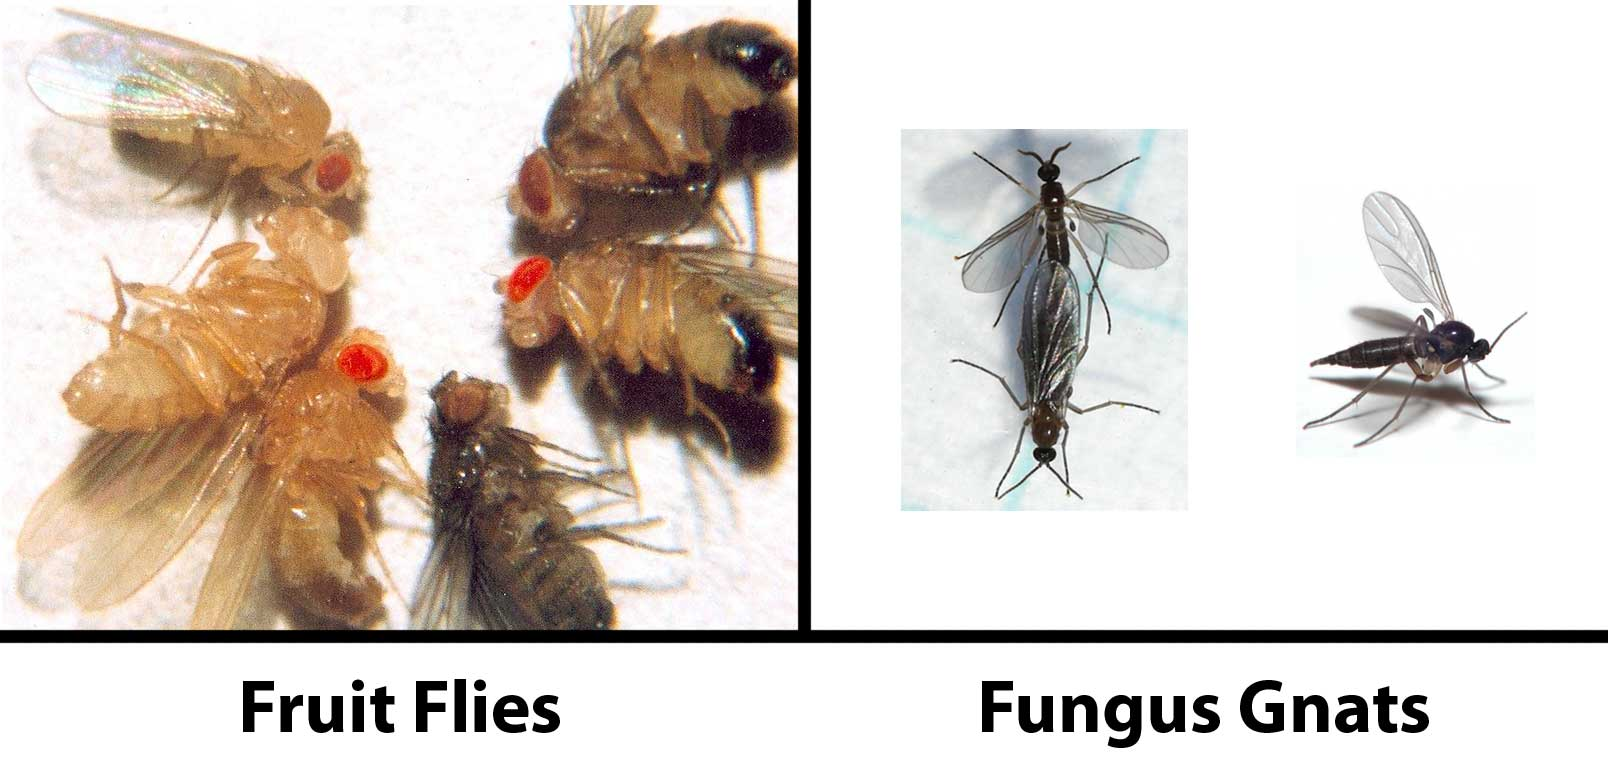 Fungus gnats vs fruit flies